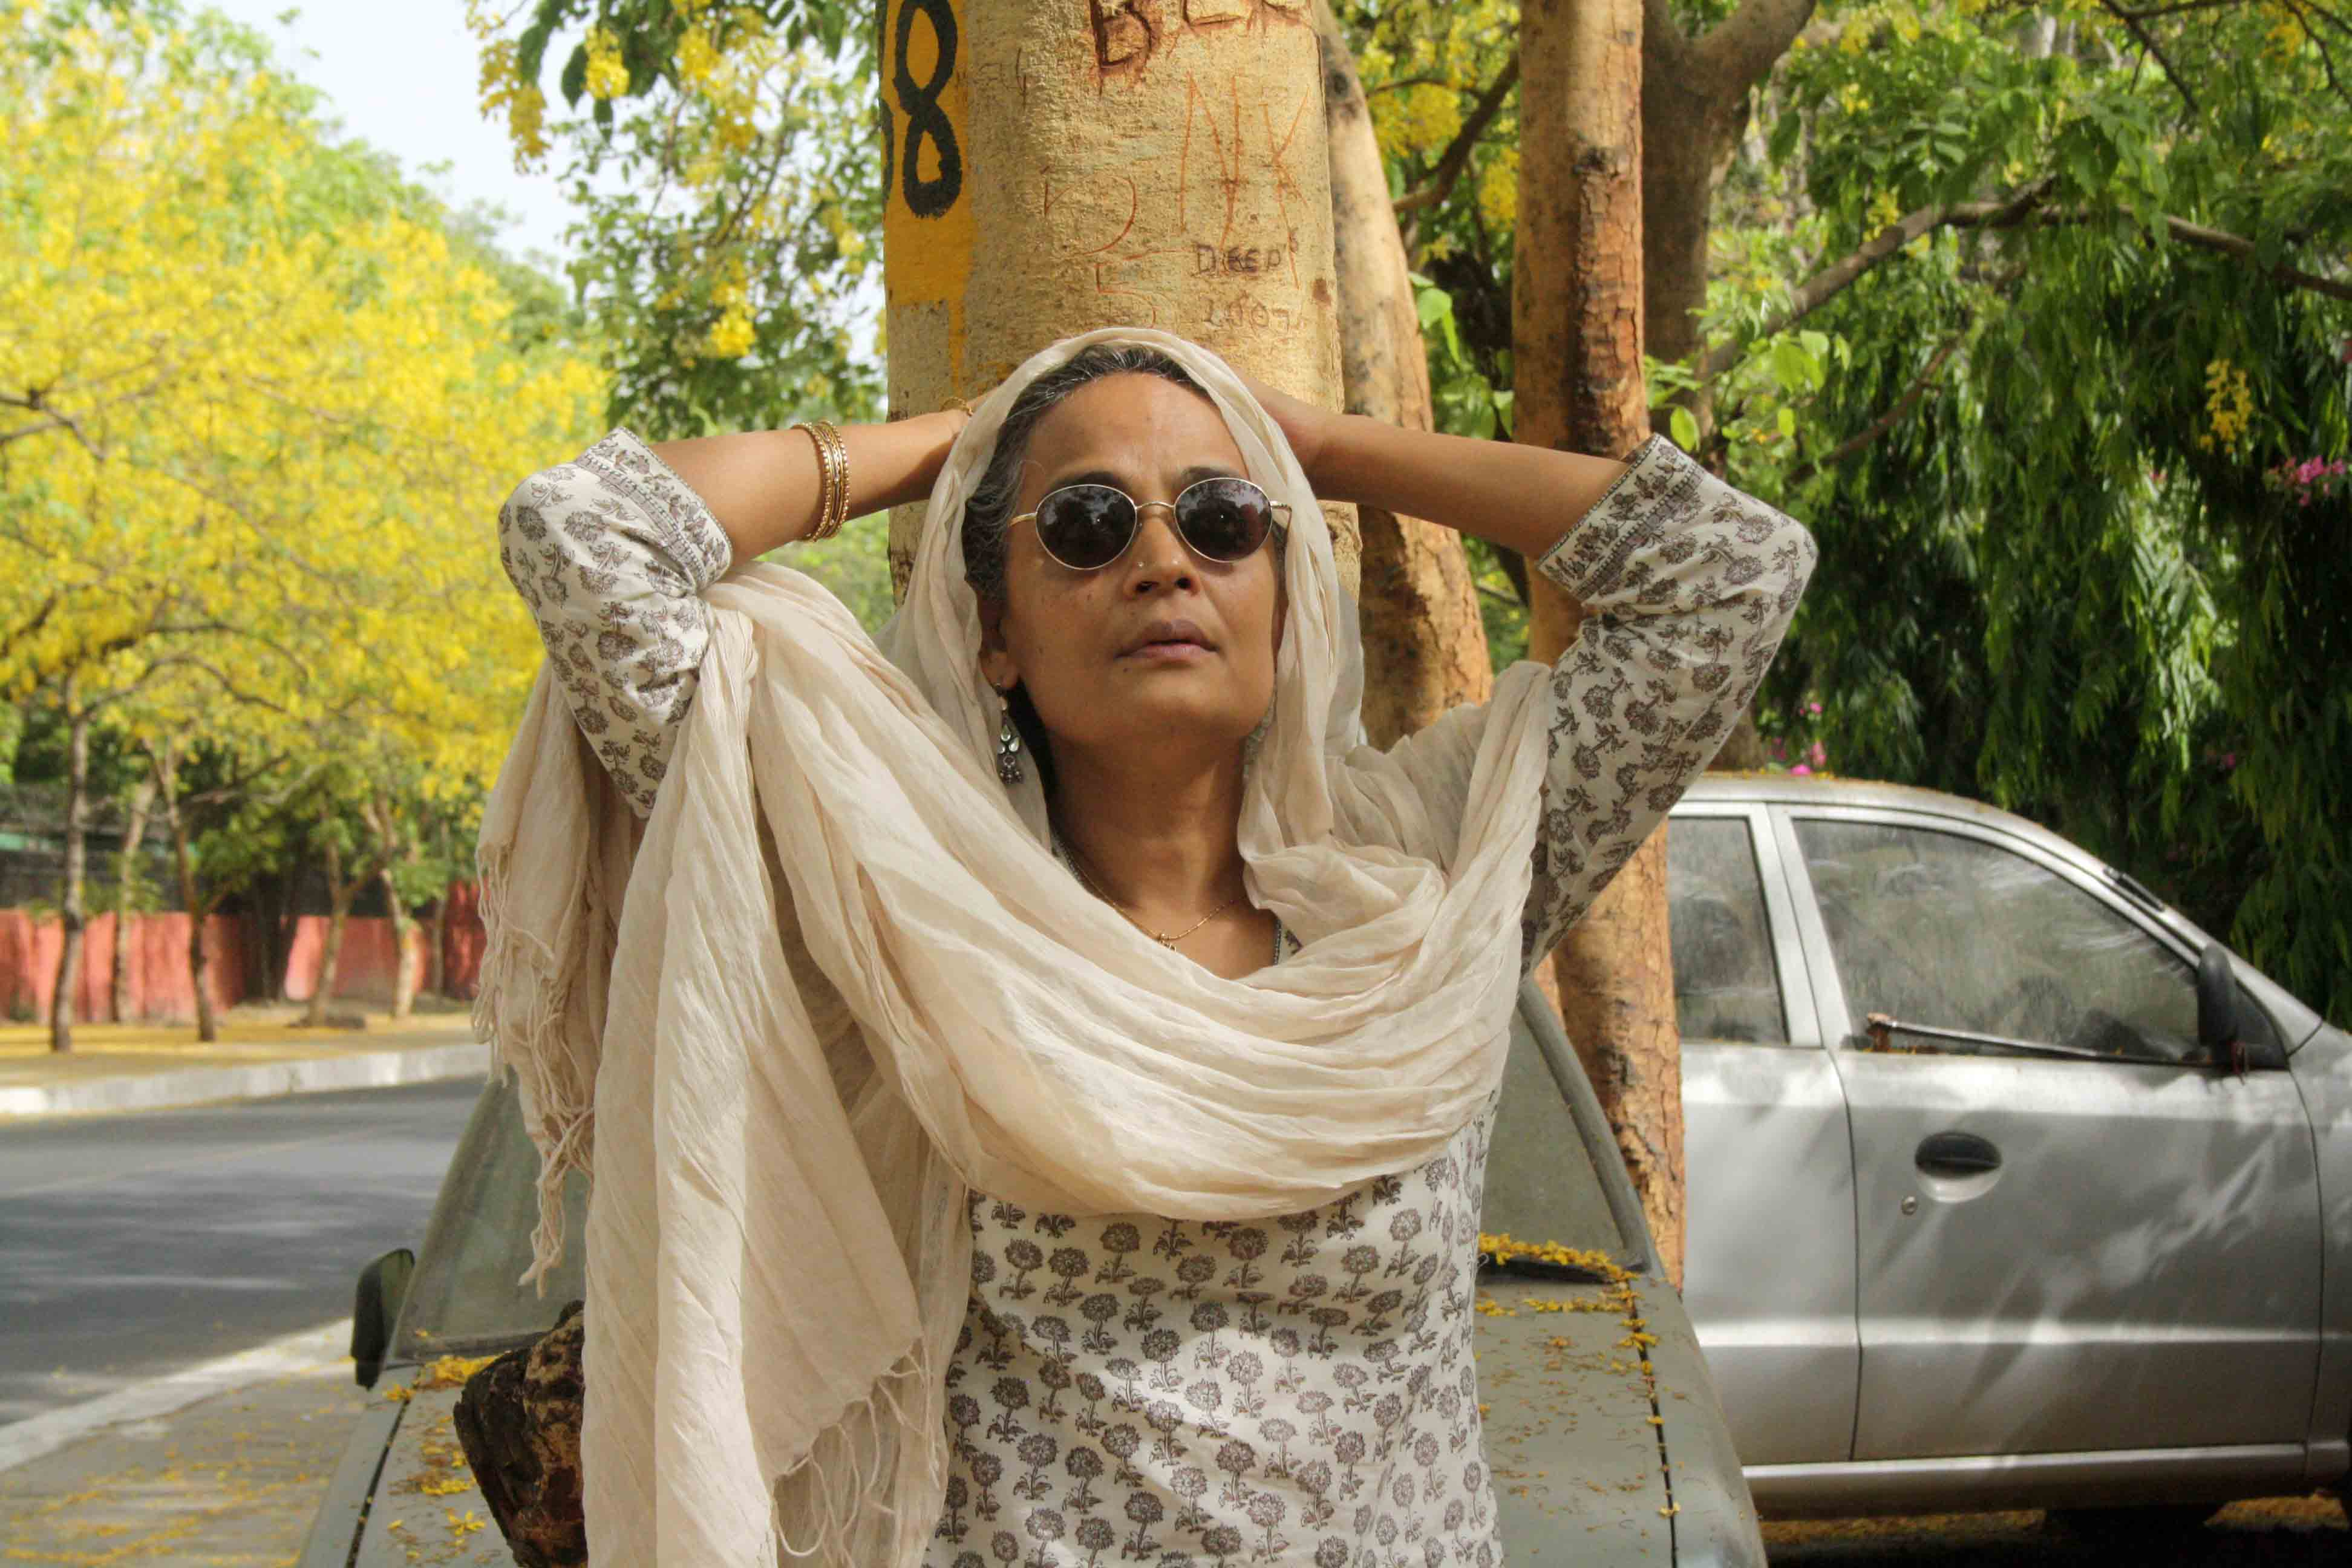 City Sighting - Arundhati Roy, Tansen Marg